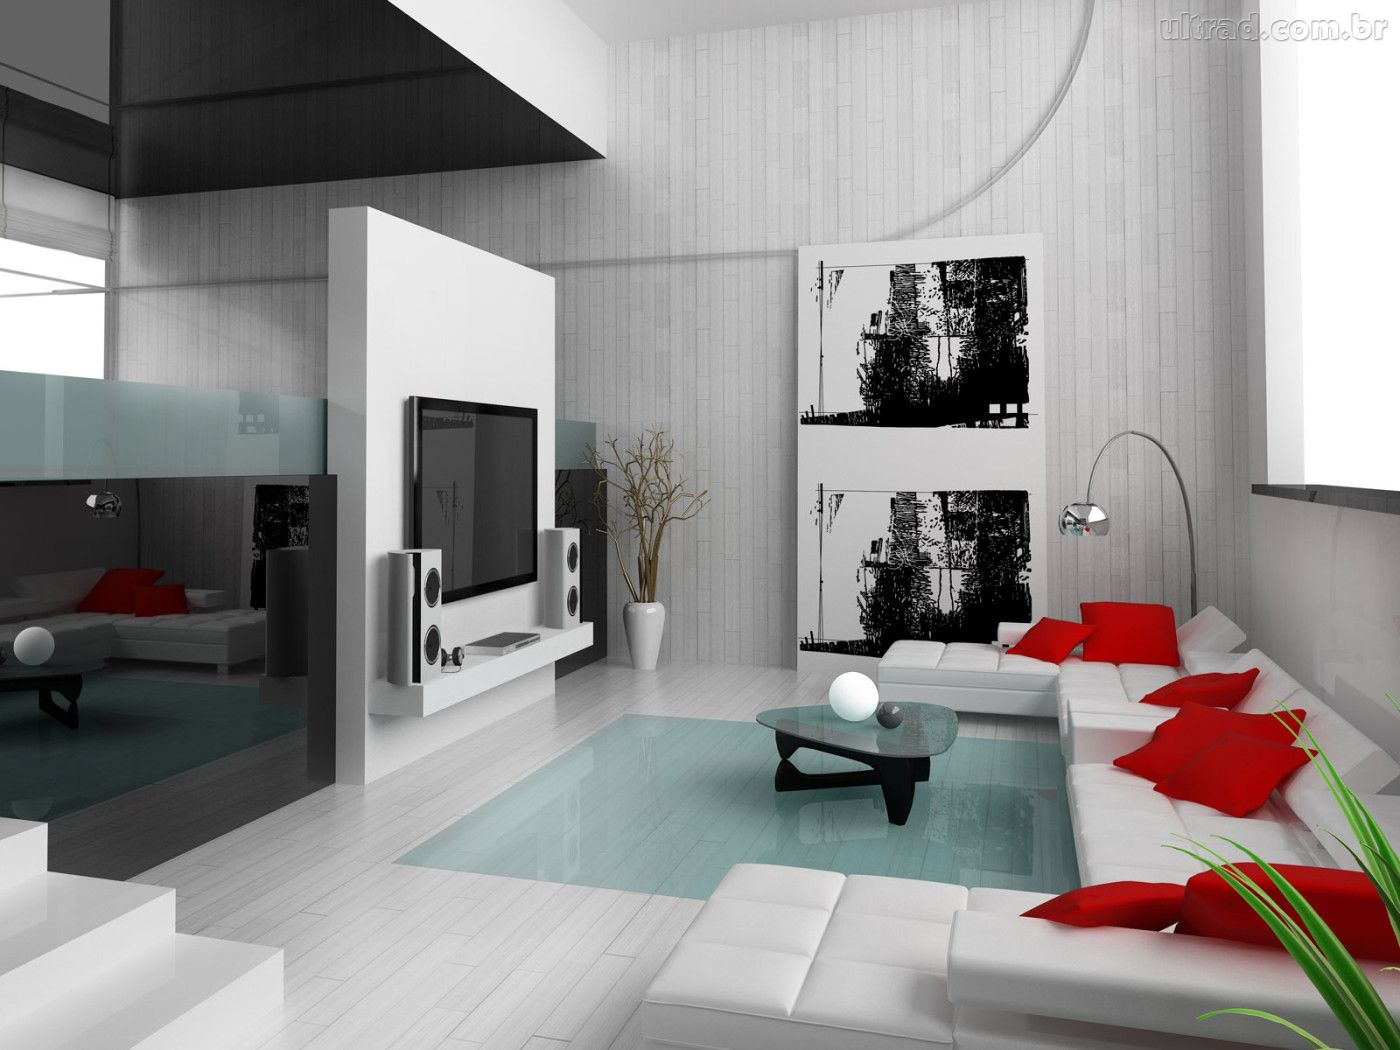 Design de interiores for Interior designer 7